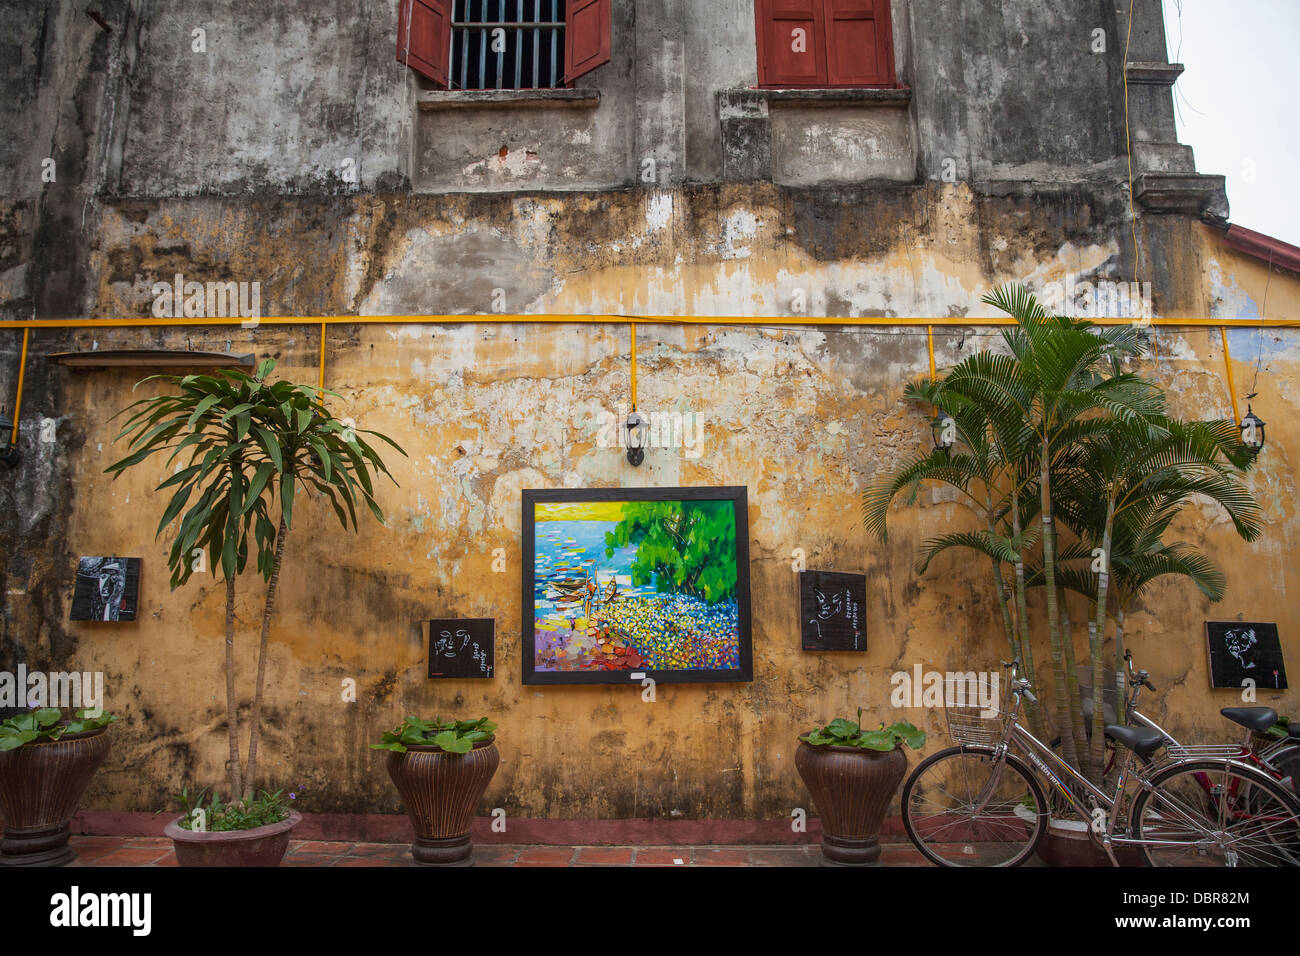 Courtyard of Hu Hoa Temple in Old Quarter, Hoi An, Vietnam, Southeast Asia - Stock Image